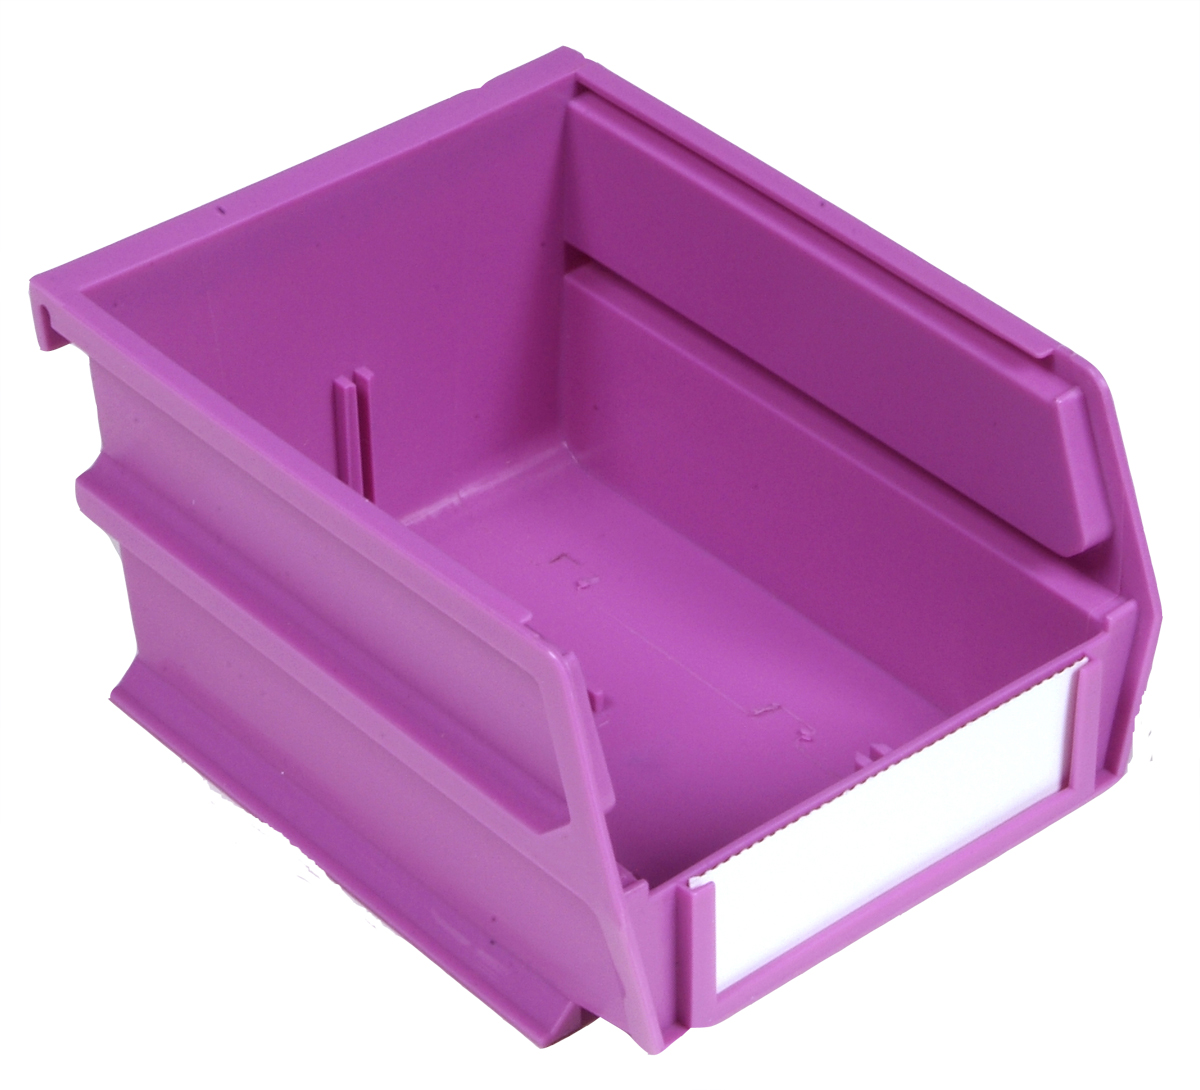 5-3/8 In. L x 4-1/8 In. W x 3 In. H Orchid Stacking, Hanging, Interlocking Polypropylene Bins, 10 CT